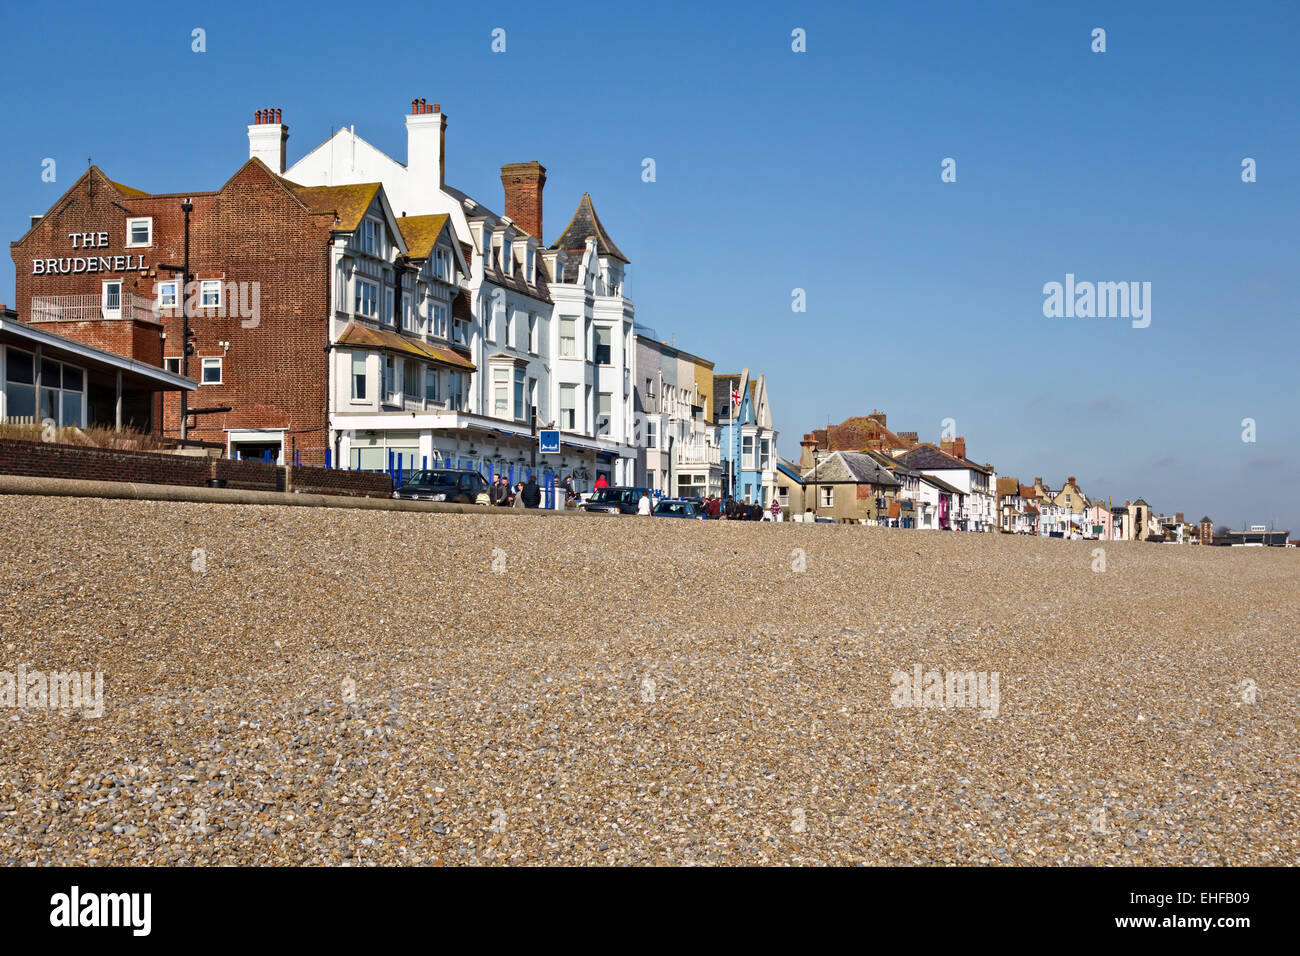 Aldeburgh, Suffolk, UK. Houses along the sea front, with The Brudenell Hotel in the foreground Stock Photo